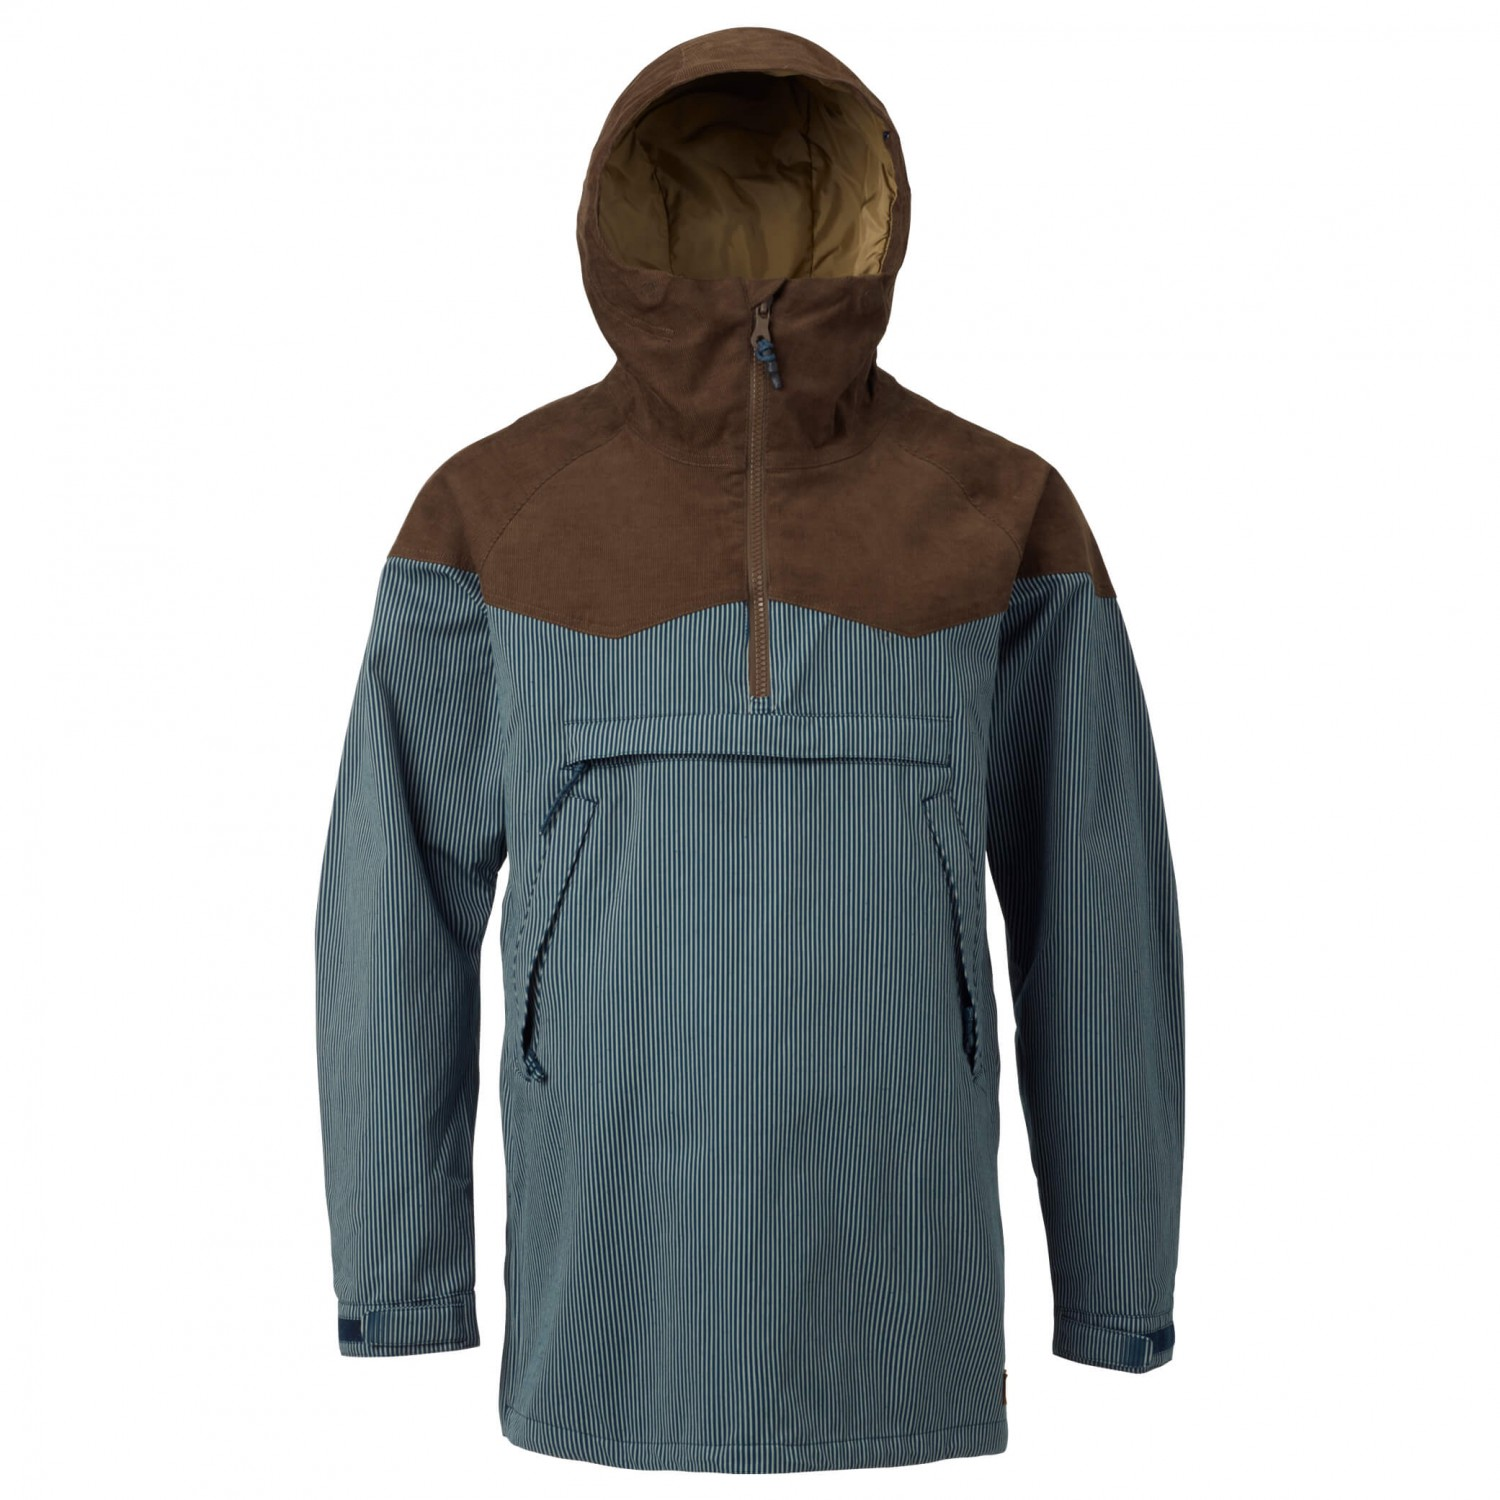 Este anorak es ideal para no pasar frío al esquiar. This anorak is ideal for not letting in the cold when you ski.